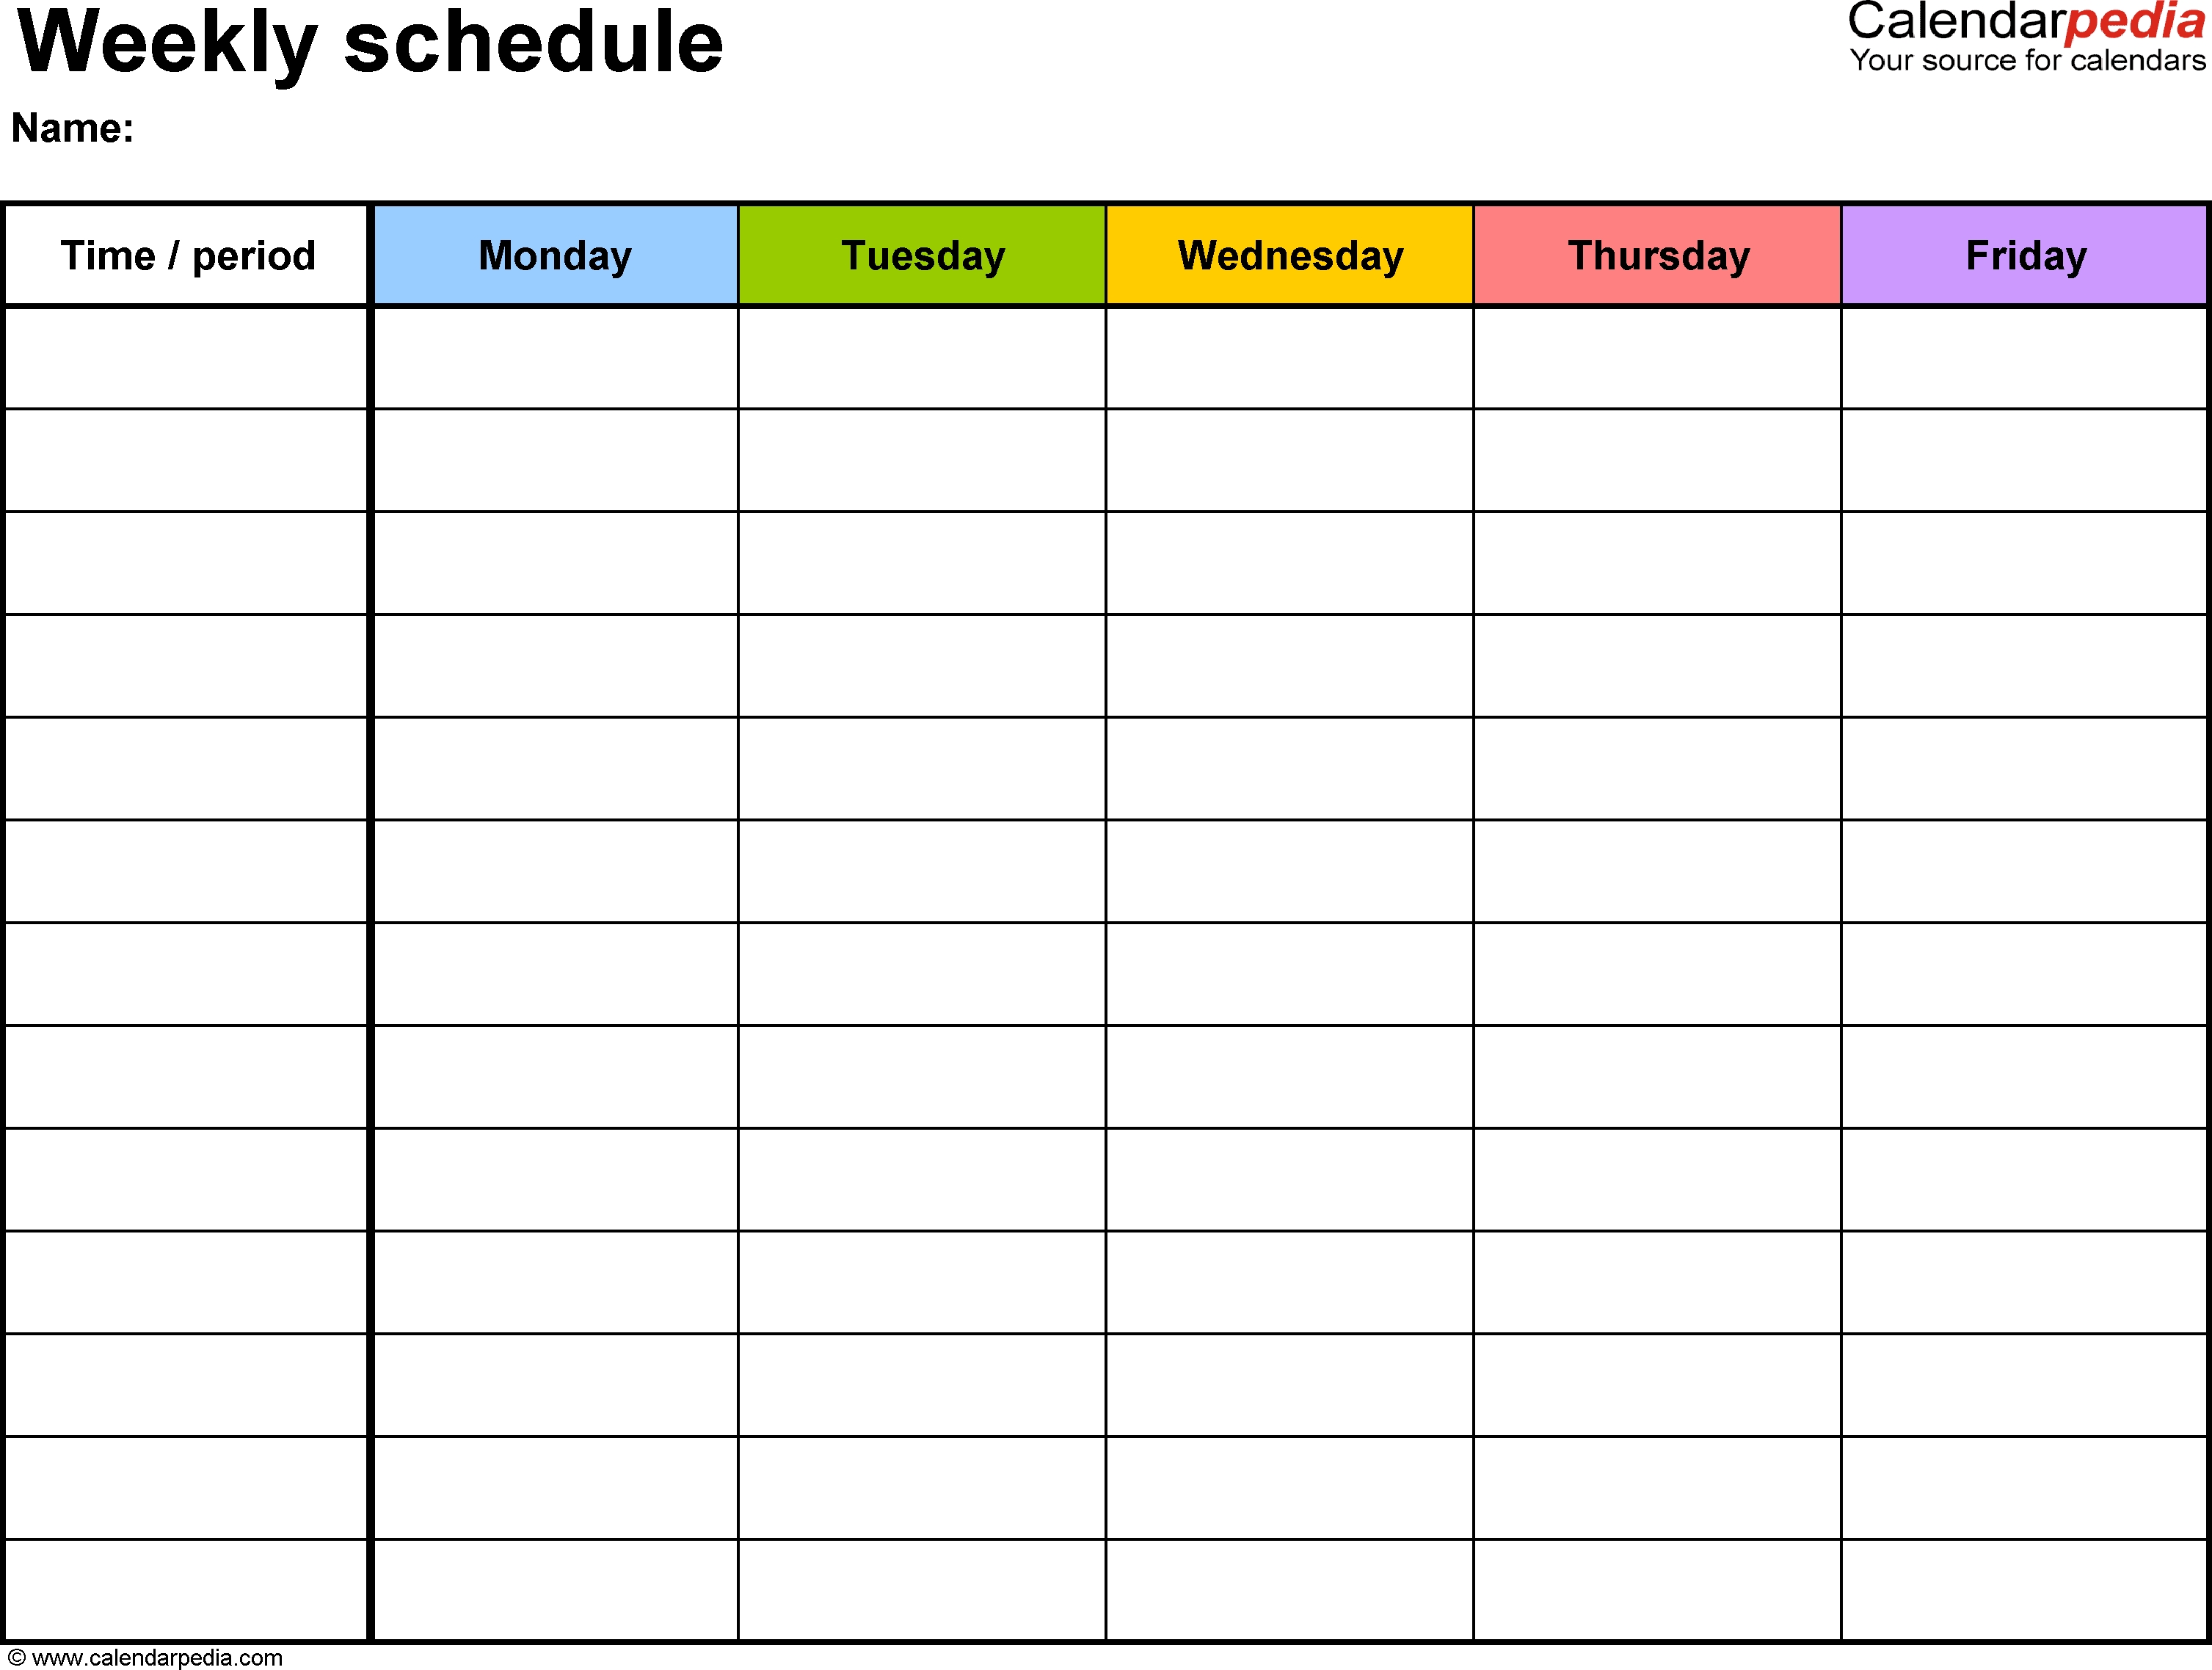 Free Weekly Schedule Templates For Word - 18 Templates with 7 Day A Week Calendar